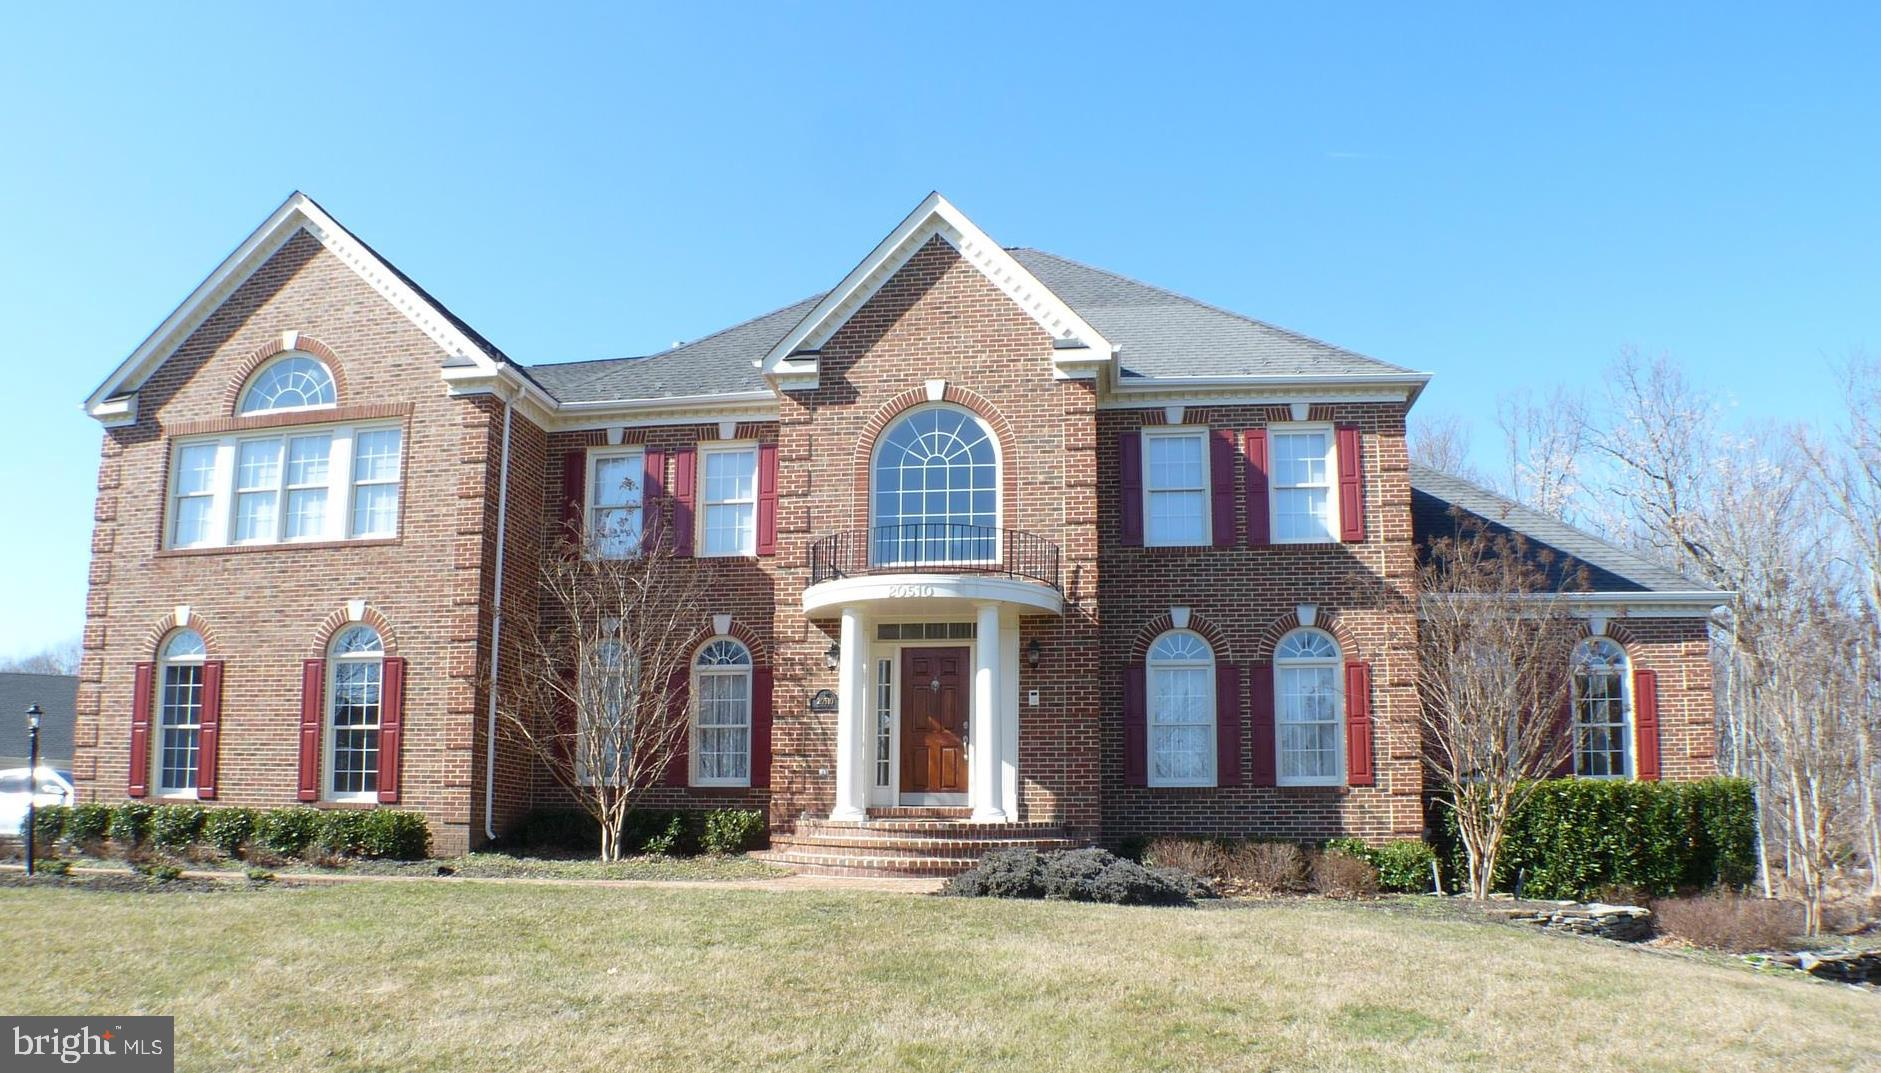 20510 BORDLY COURT, BROOKEVILLE, MD 20833